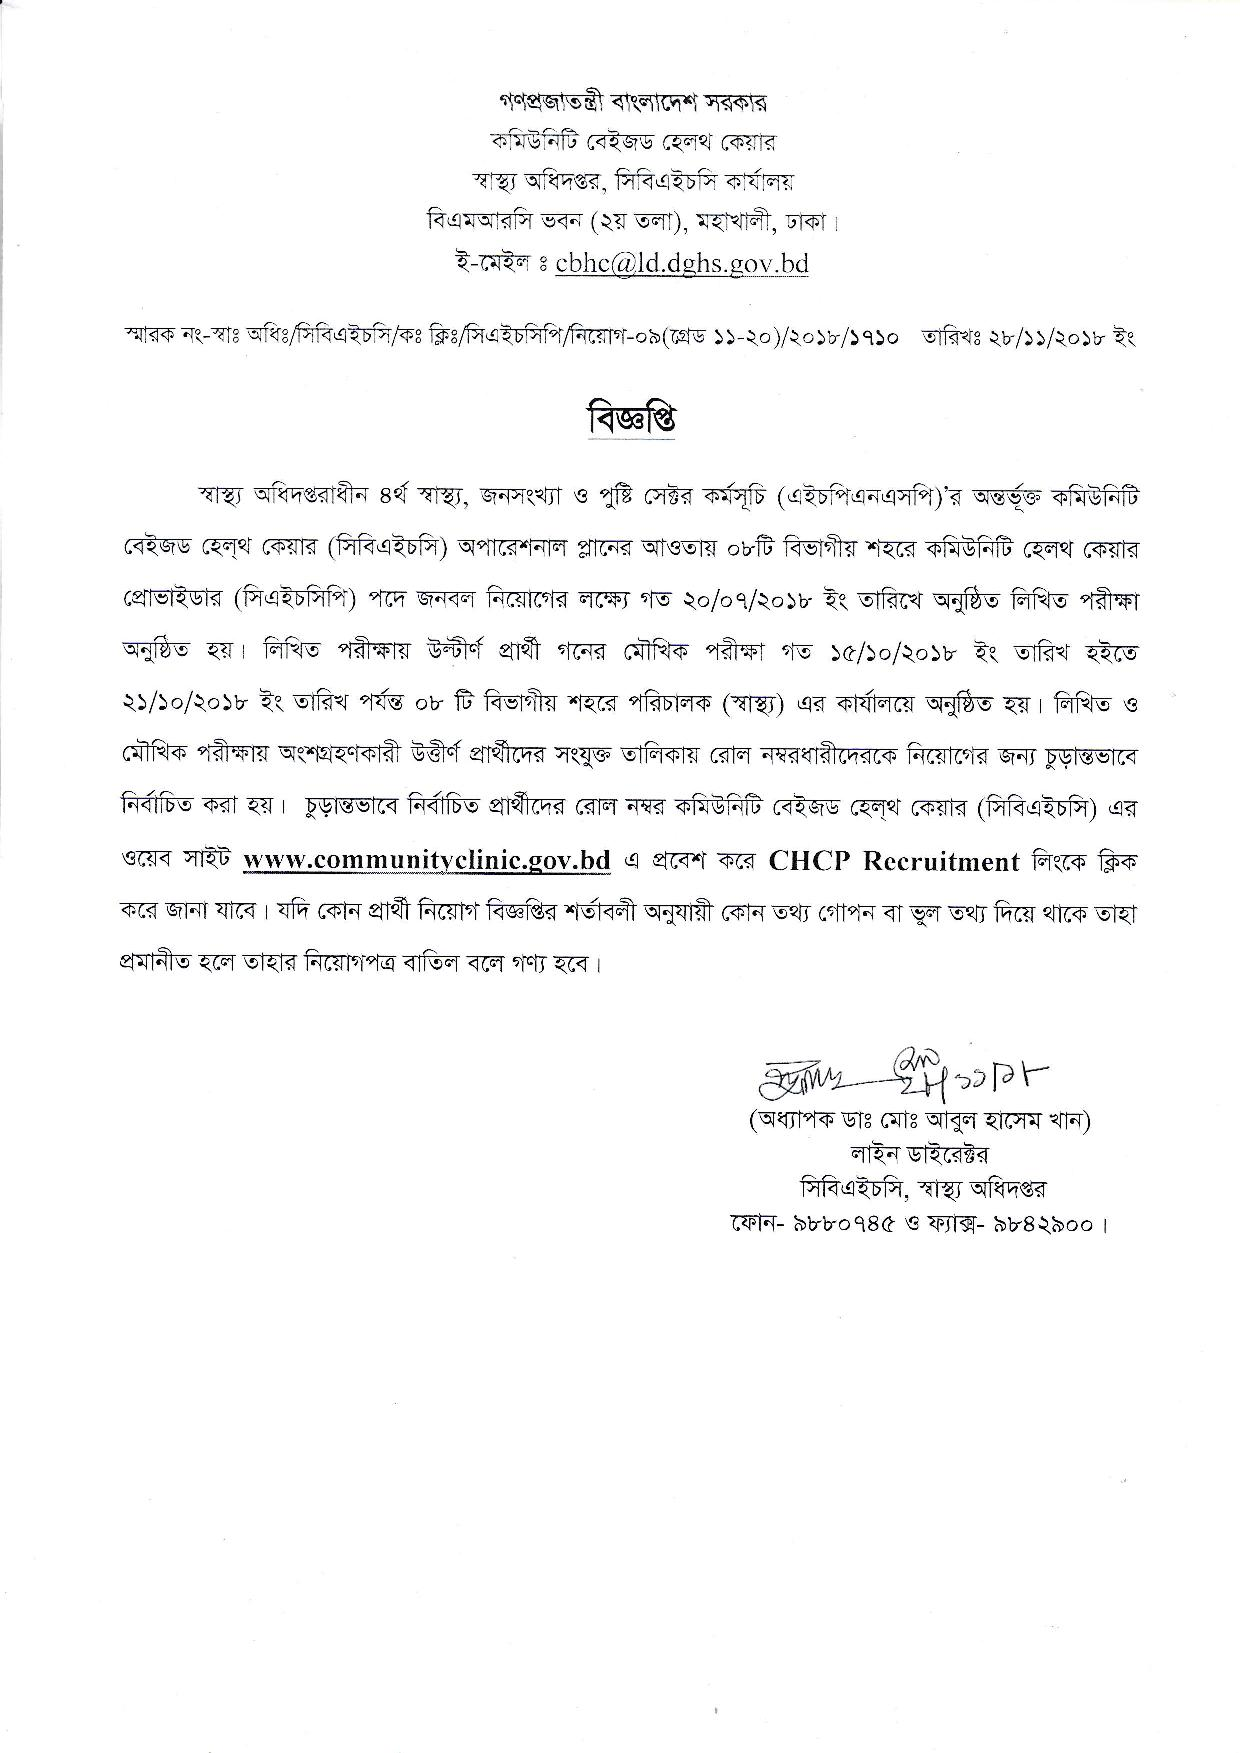 Community Clinic (CHCP) Viva Final Result 2018